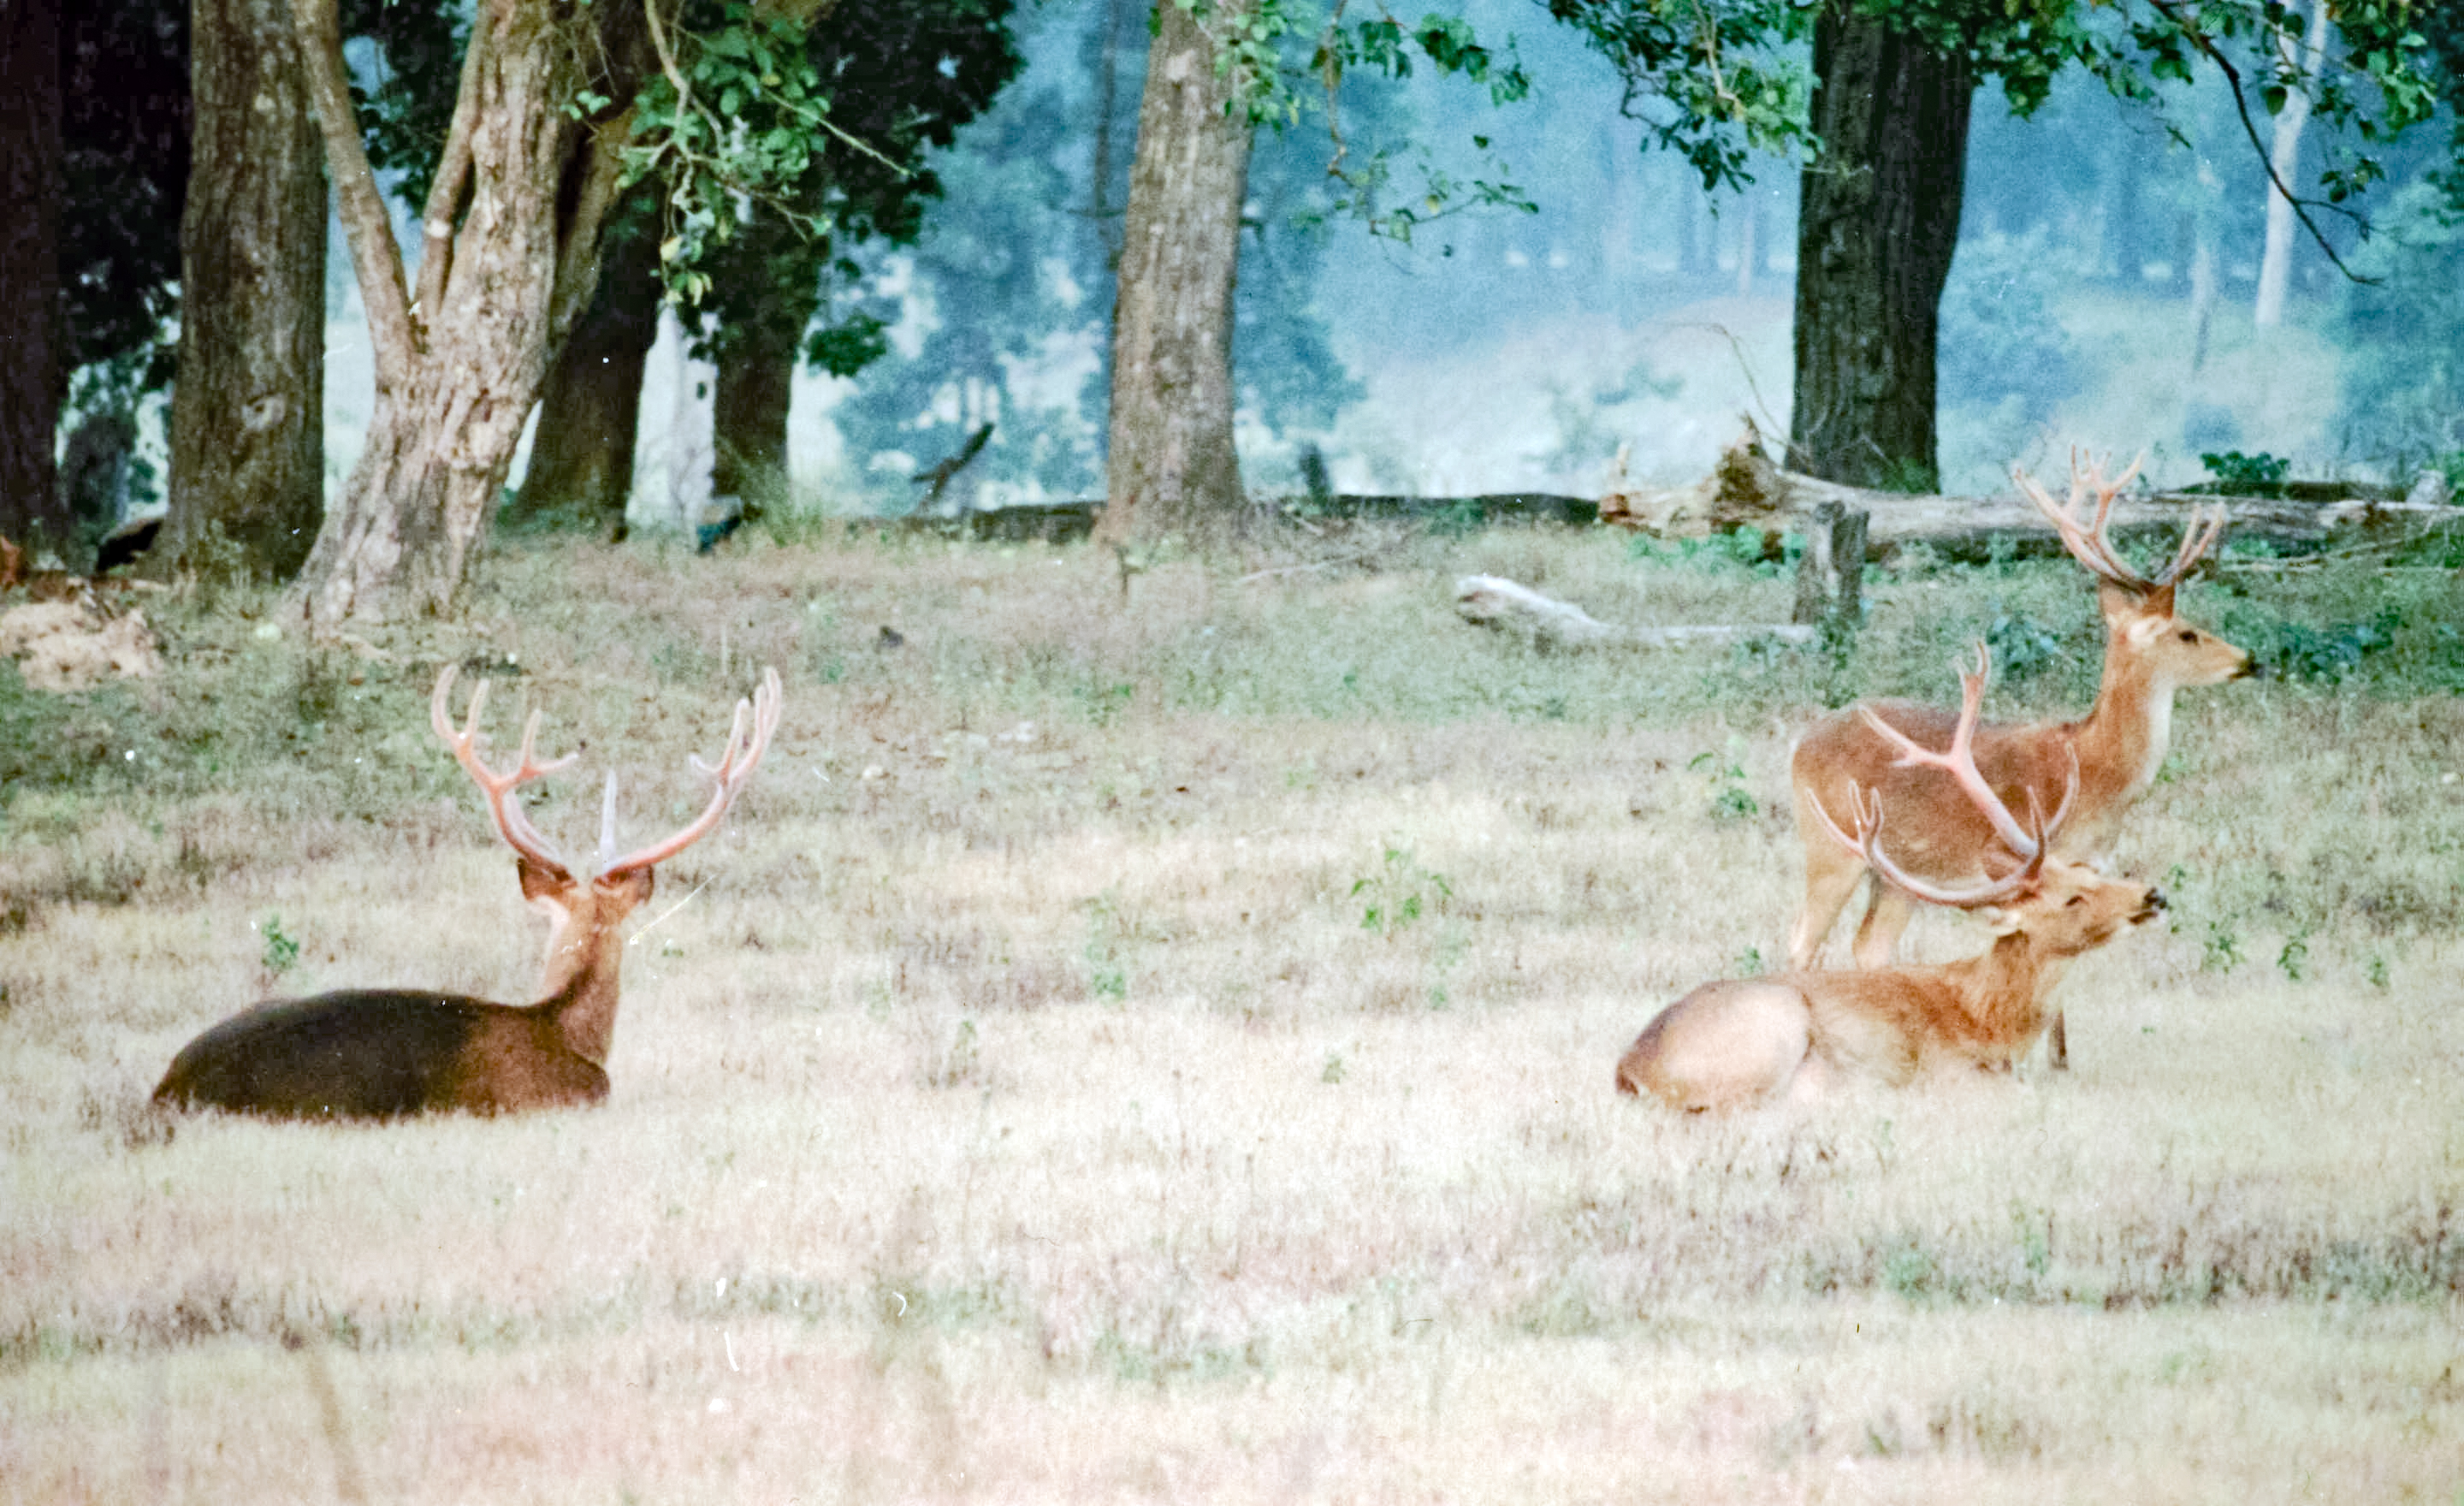 Kanha National Park and Kanha Tiger Reserve